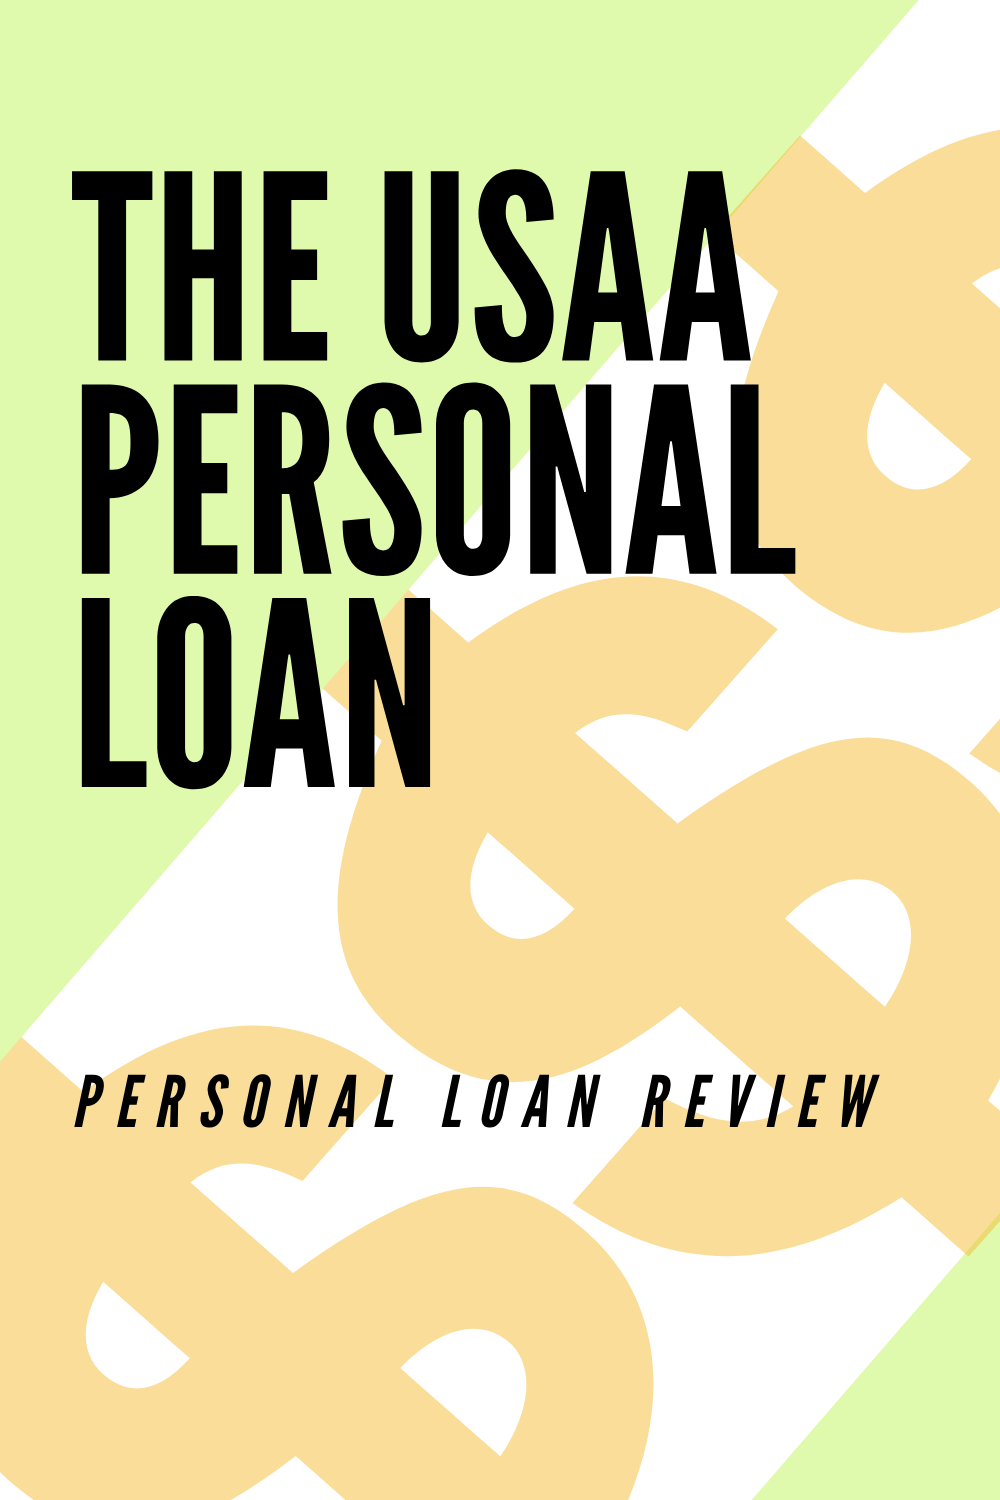 USAA Personal Loan in 2020 (With images) Personal loans